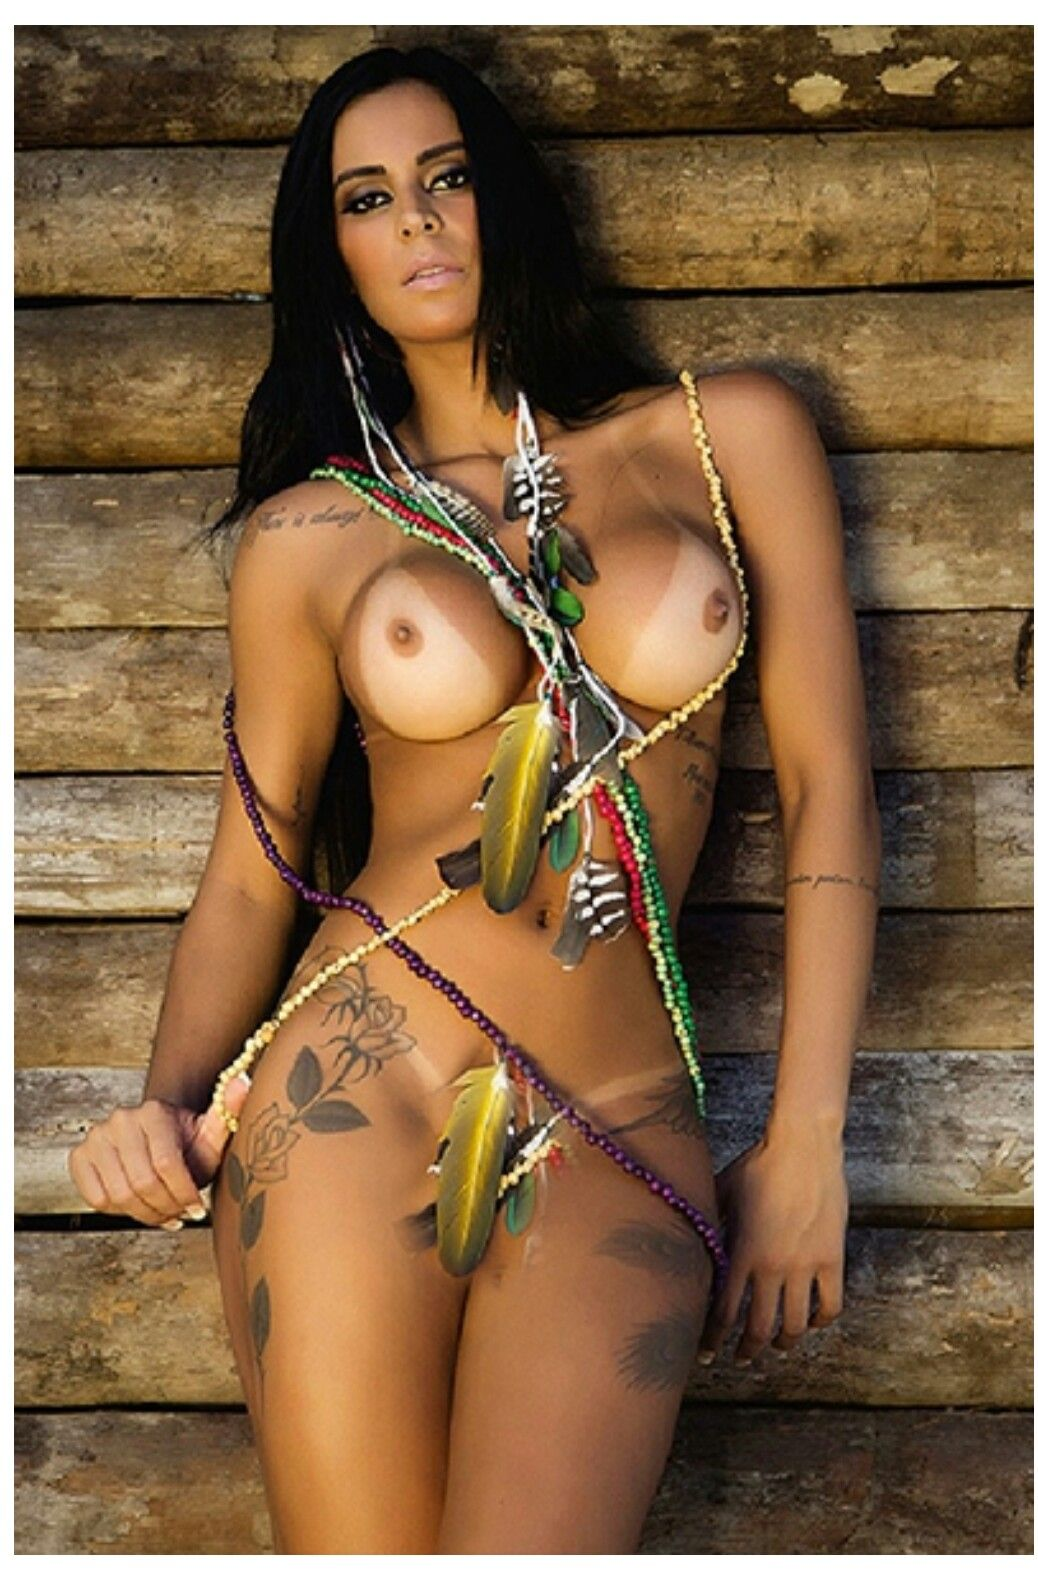 nude-pics-of-hot-brazilians-super-hot-hijra